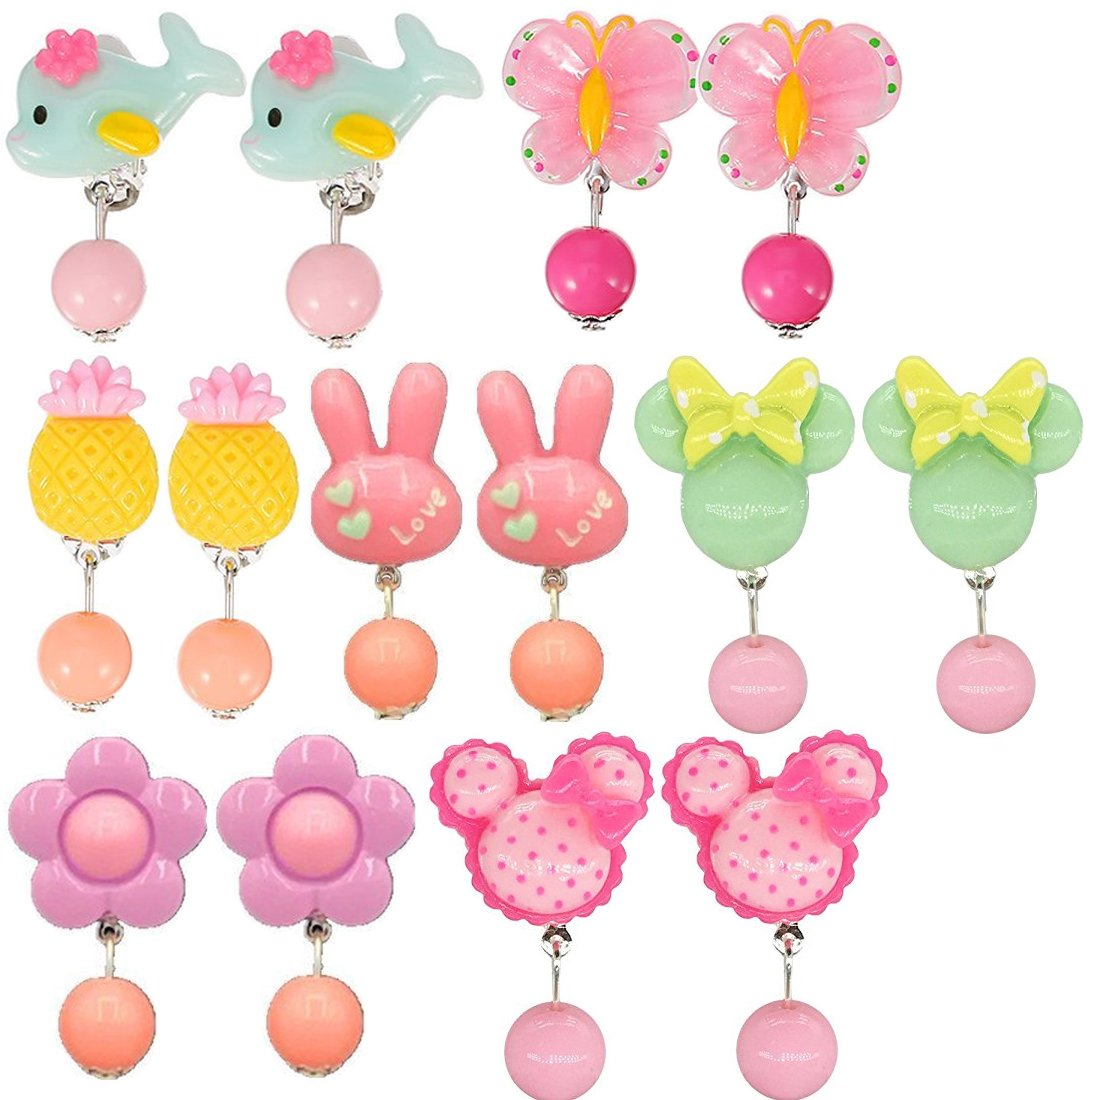 TOODOO 14 Pairs Clip-on Earrings Girls Play Earrings for Party Favor All Packed in 2 Clear Boxes